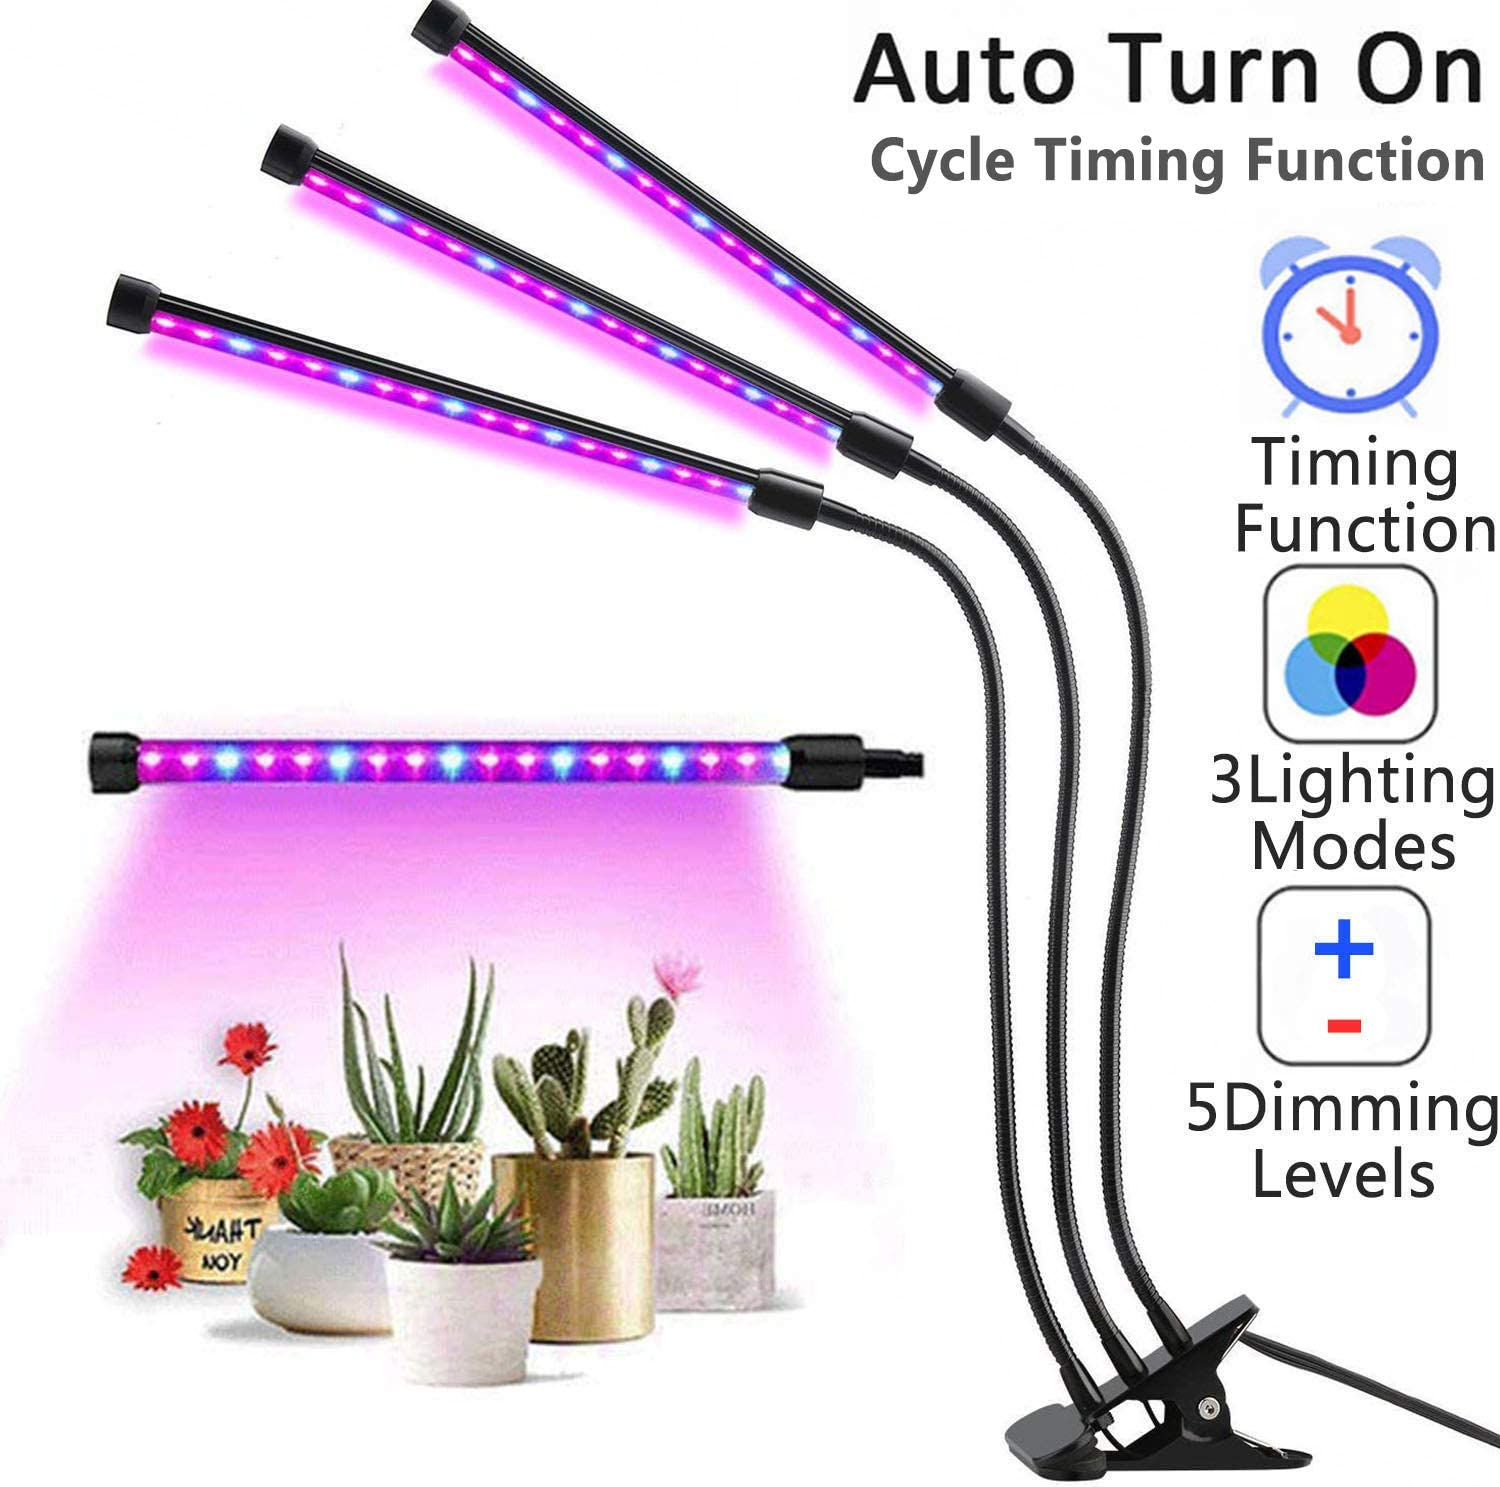 Triple Head Adjustable Grow Lamp Led Grow Lights for Indoor Plants Upgraded LED Grow Light Auto On /& Off with 3//6//12H Timer 5 Dimmable Levels and 3 Lighting Modes Plant Lights for Indoor Plants